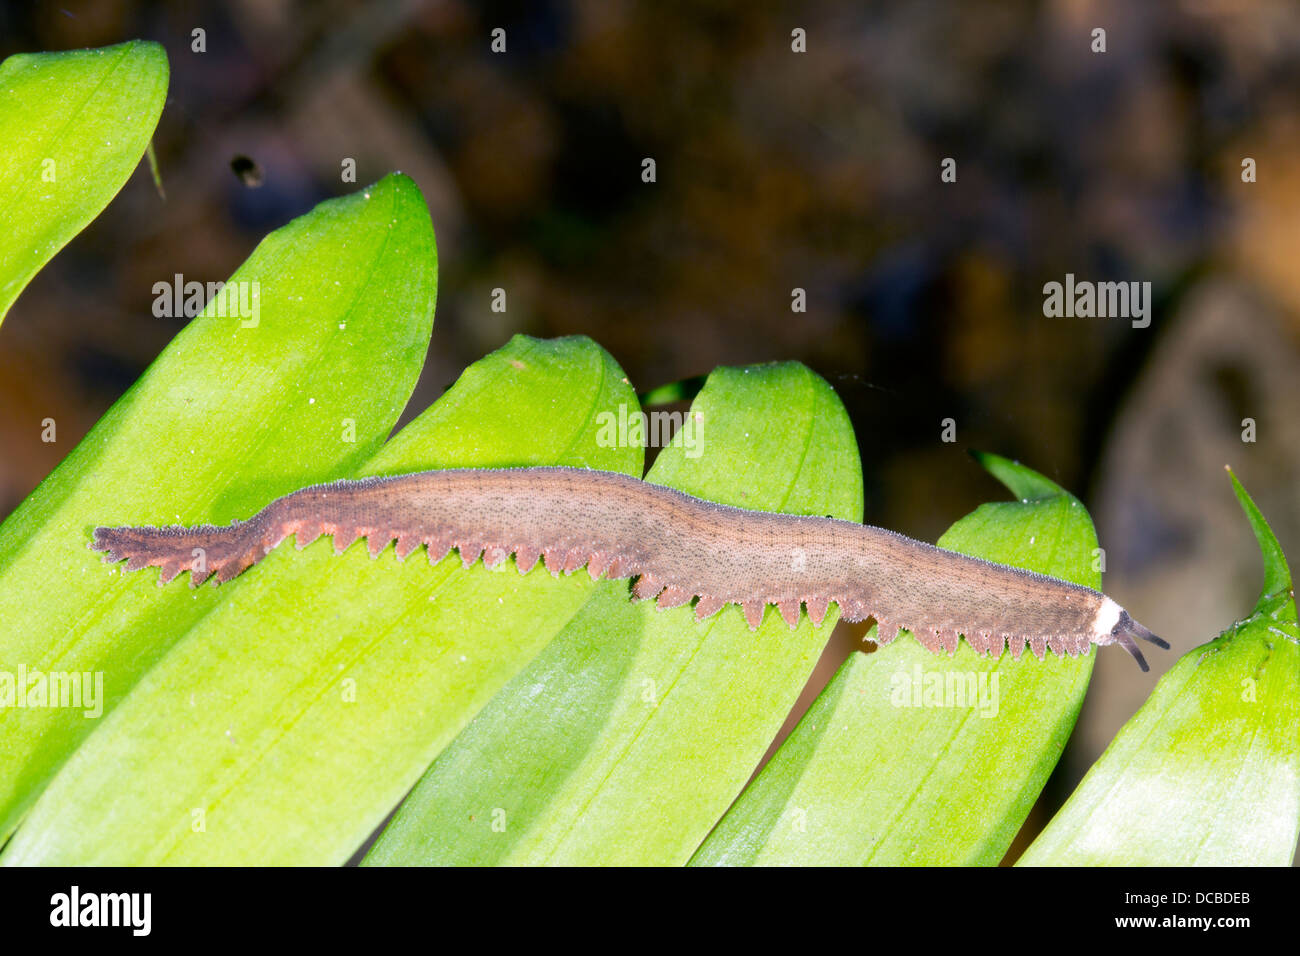 Peripatus walking along a leaf - Stock Image